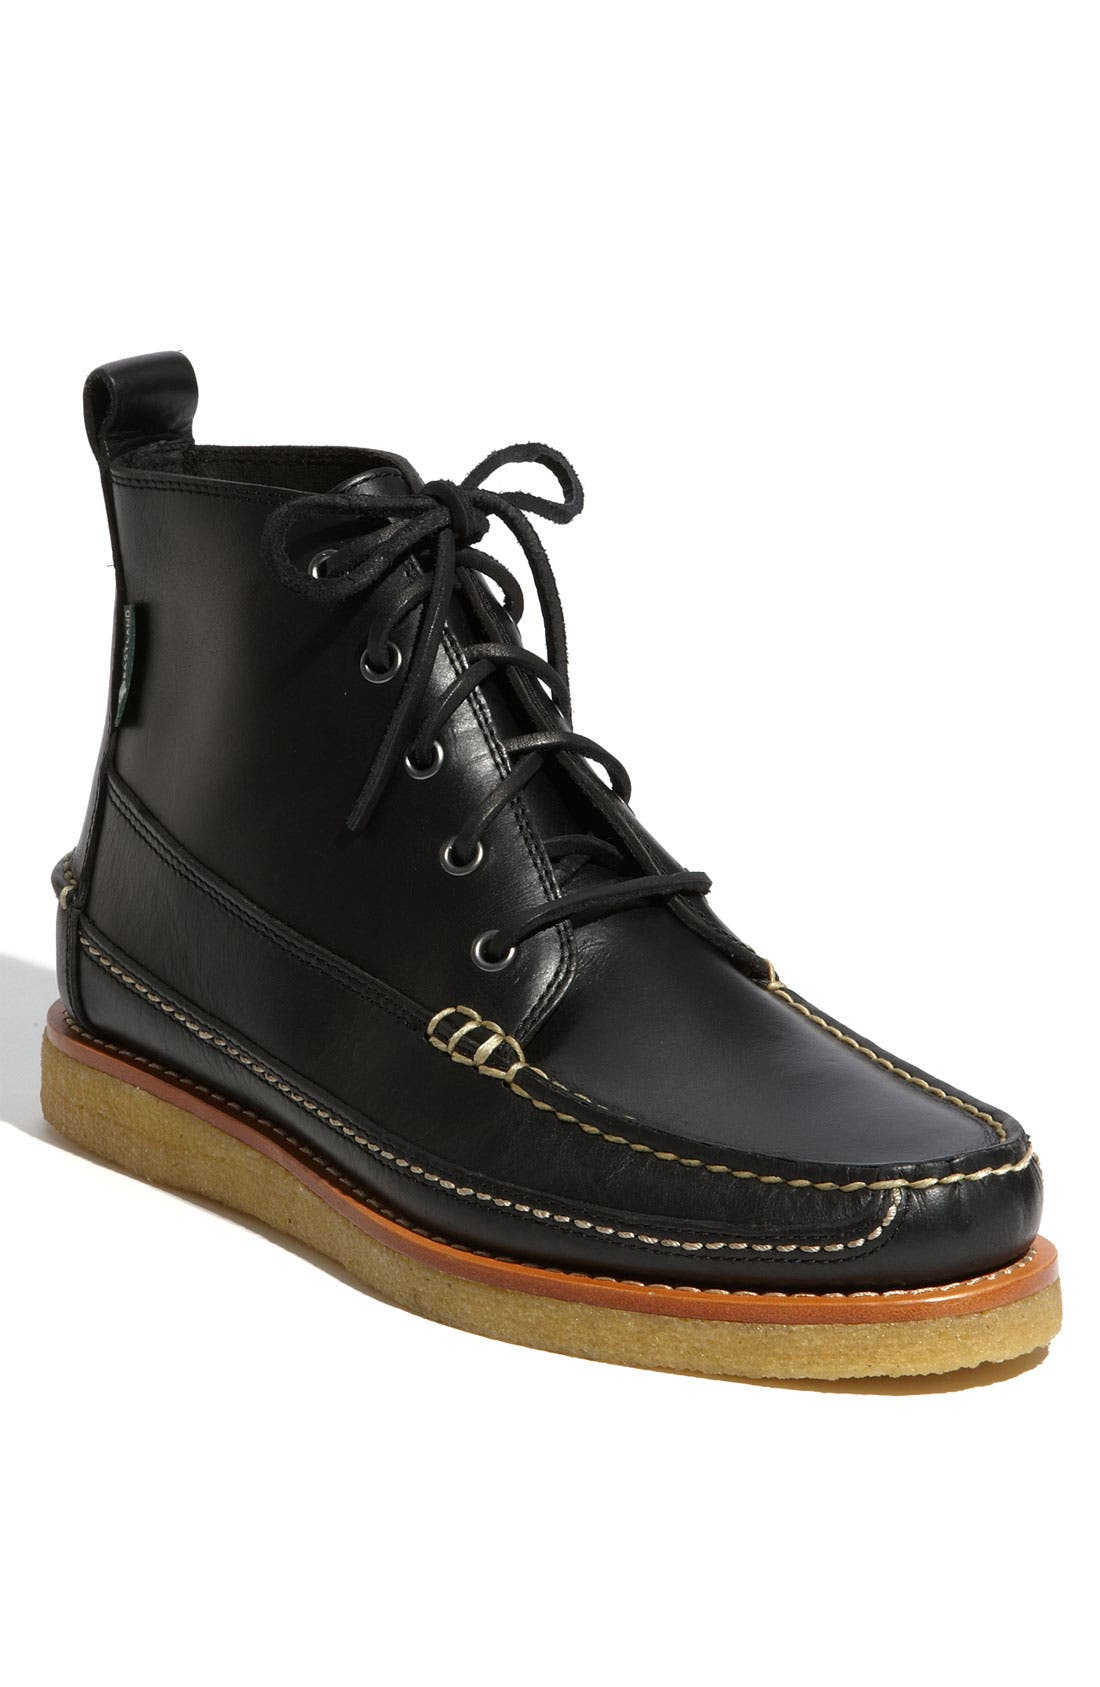 Alternate Image 1 Selected - Eastland 'Stonington 1955' Boot